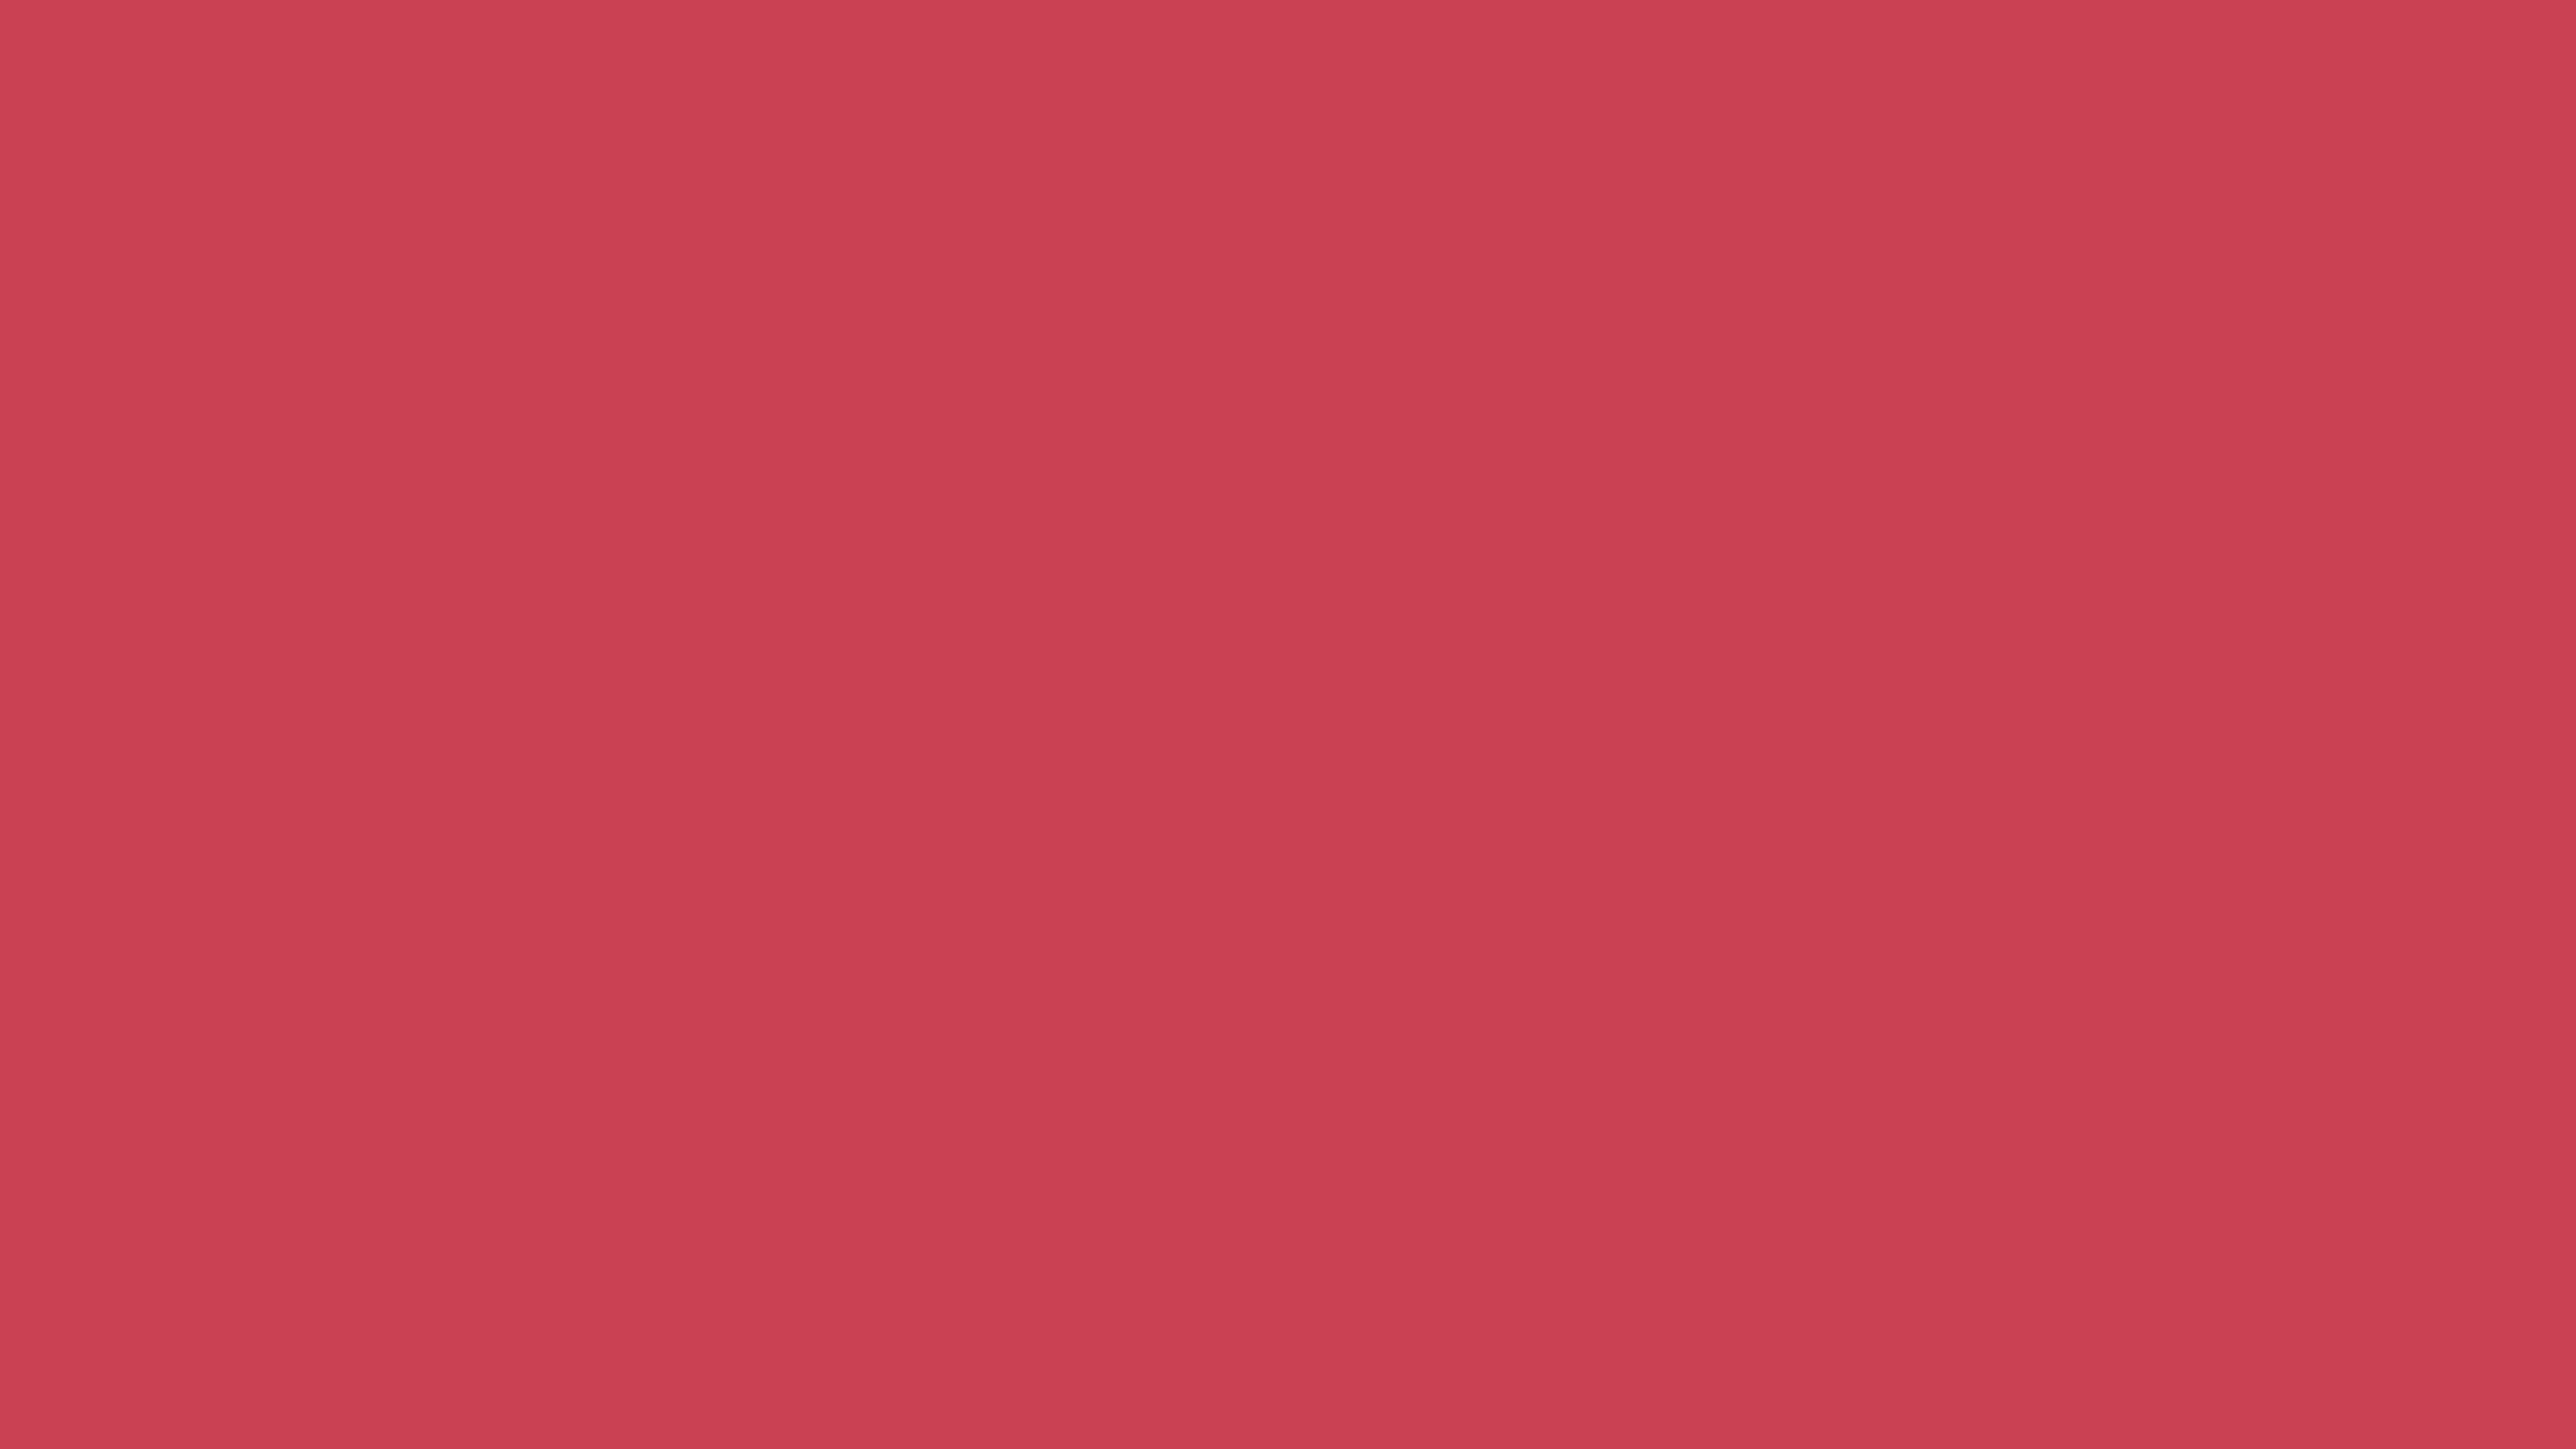 7680x4320 Brick Red Solid Color Background